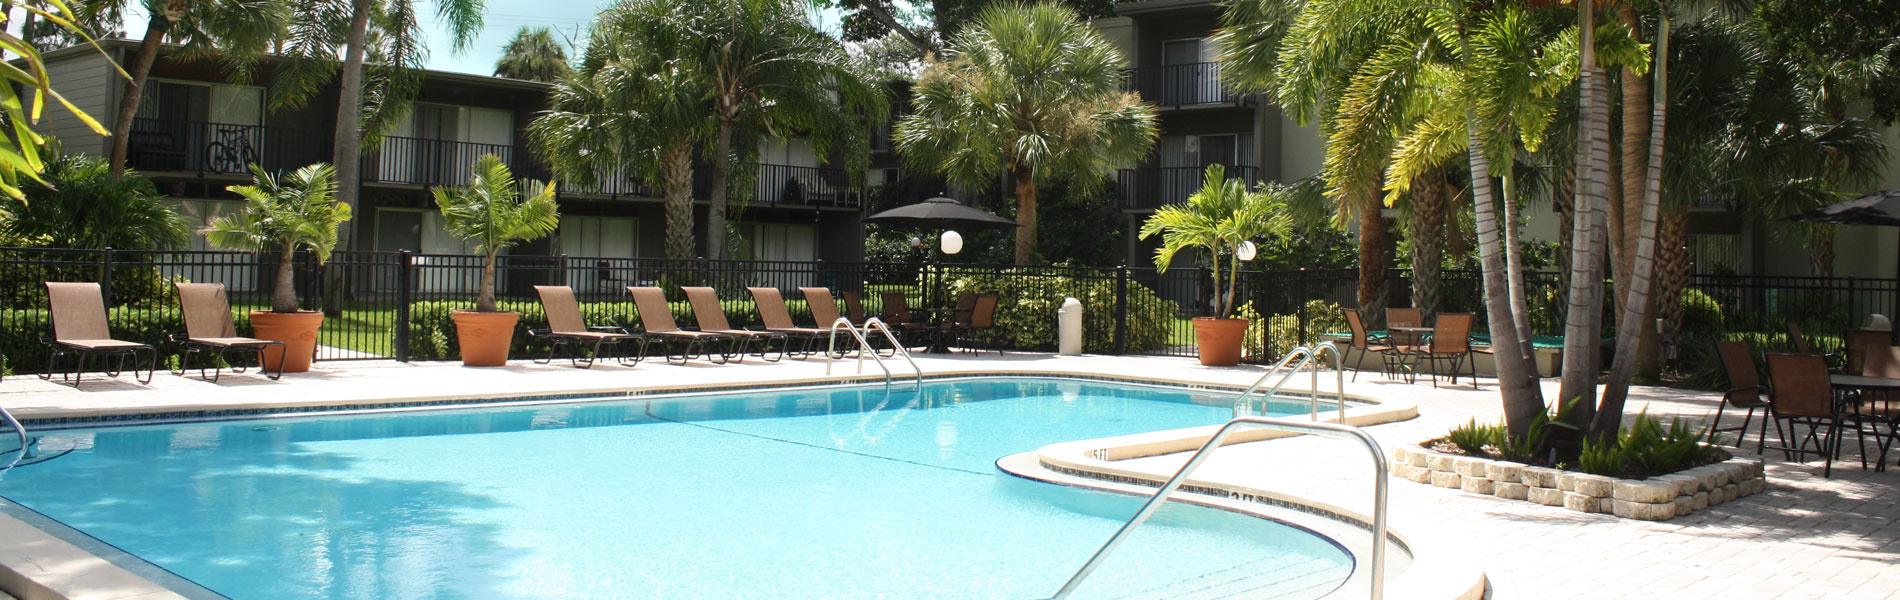 0 1 2 Bedroom Apartments For Rent In Tampa Fl Westshore Apartments Embassy Apartments In